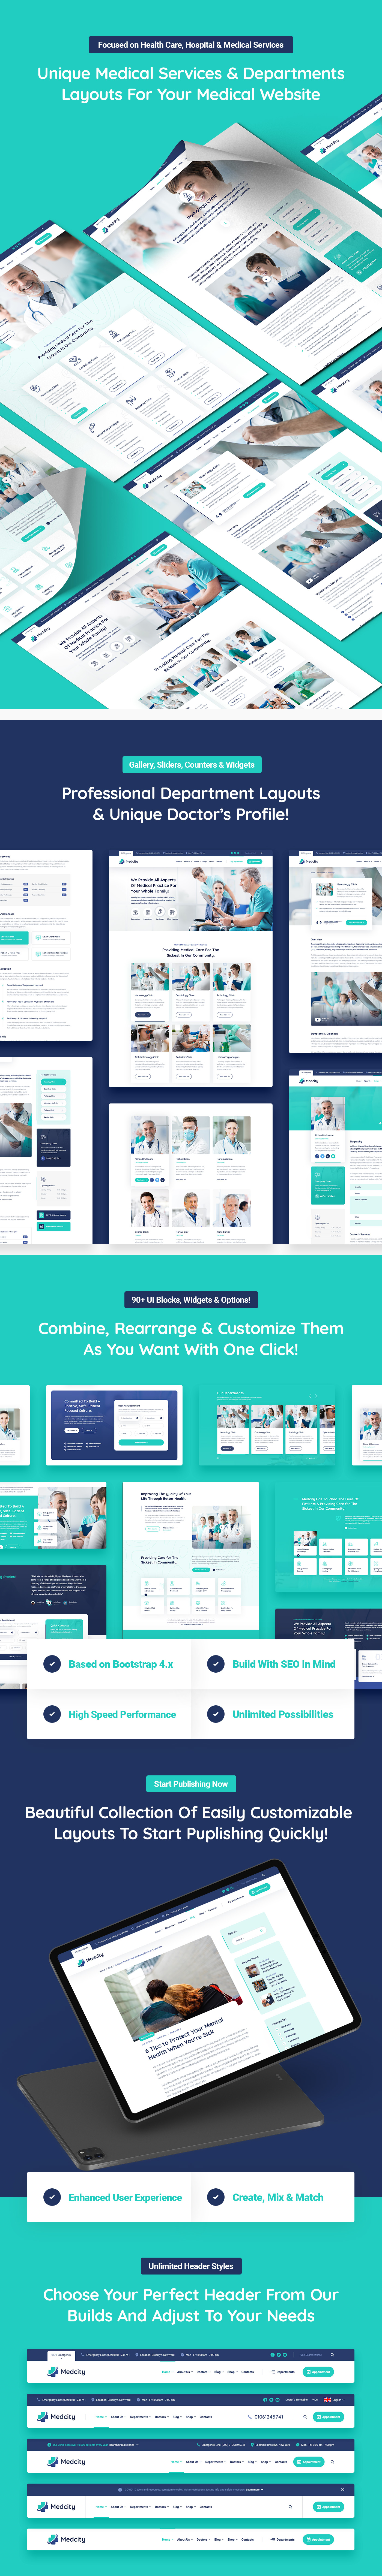 Medcity - Health & Medical HTML5 Template - 6